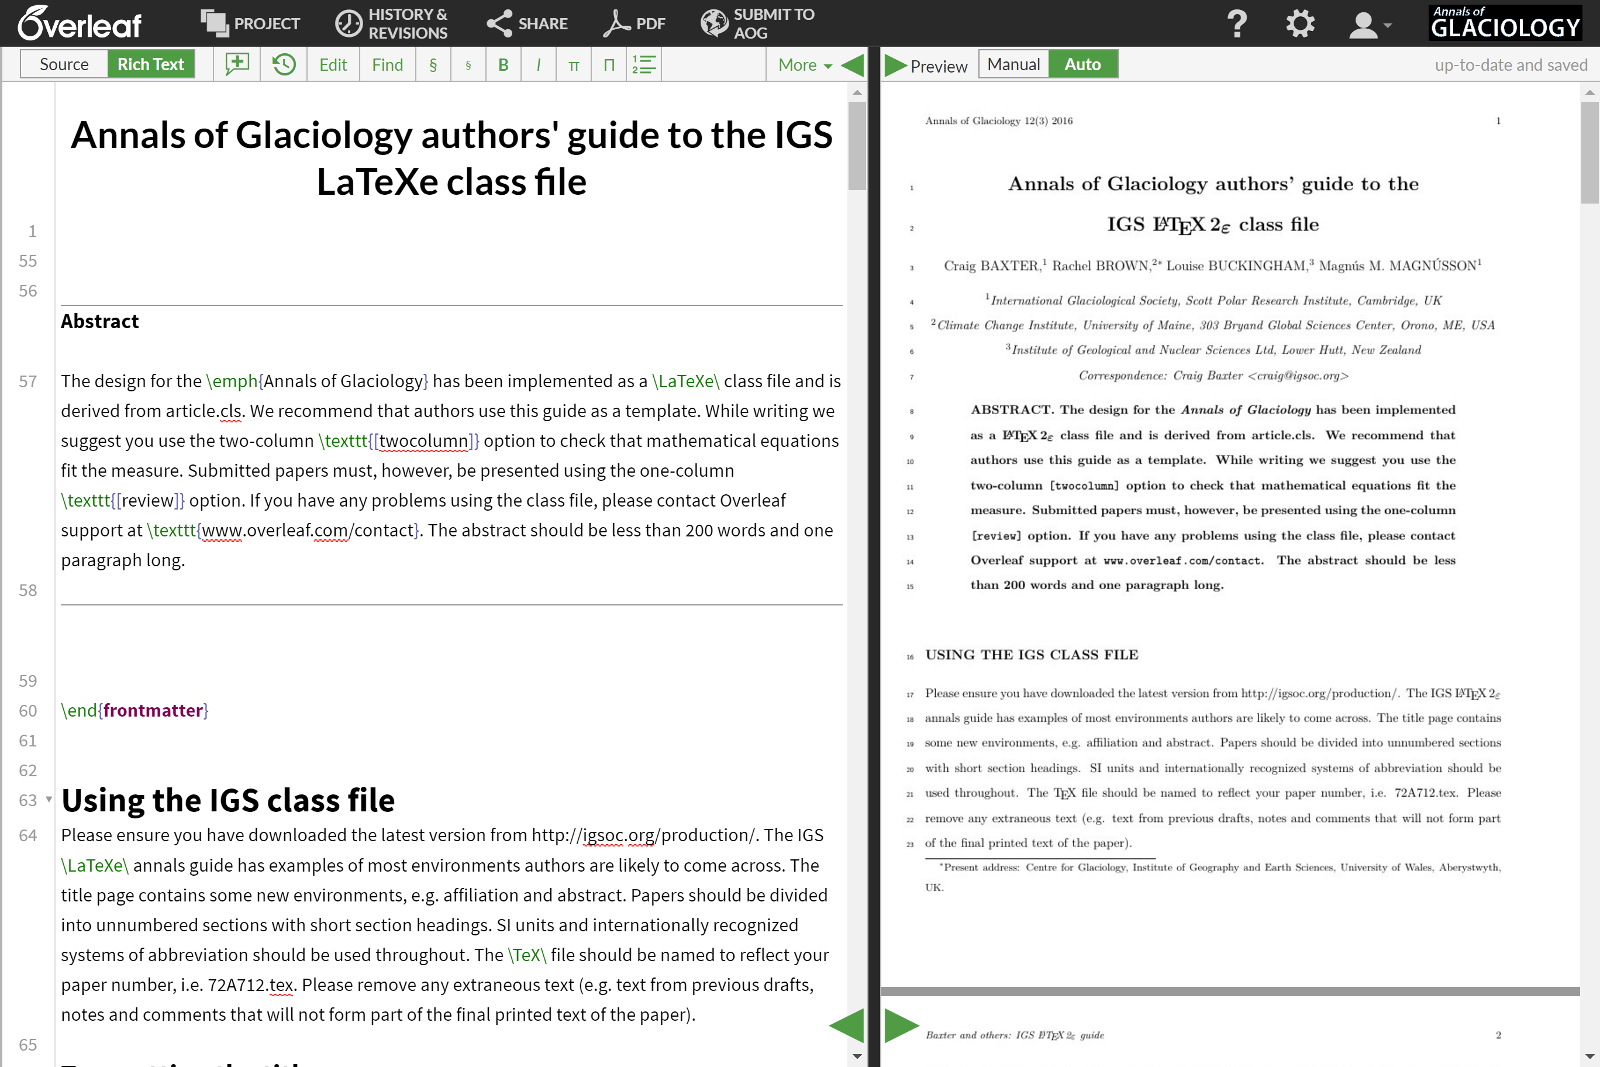 LaTeX template for the Annals of Glaciology (AOG) open in Overleaf rich text mode